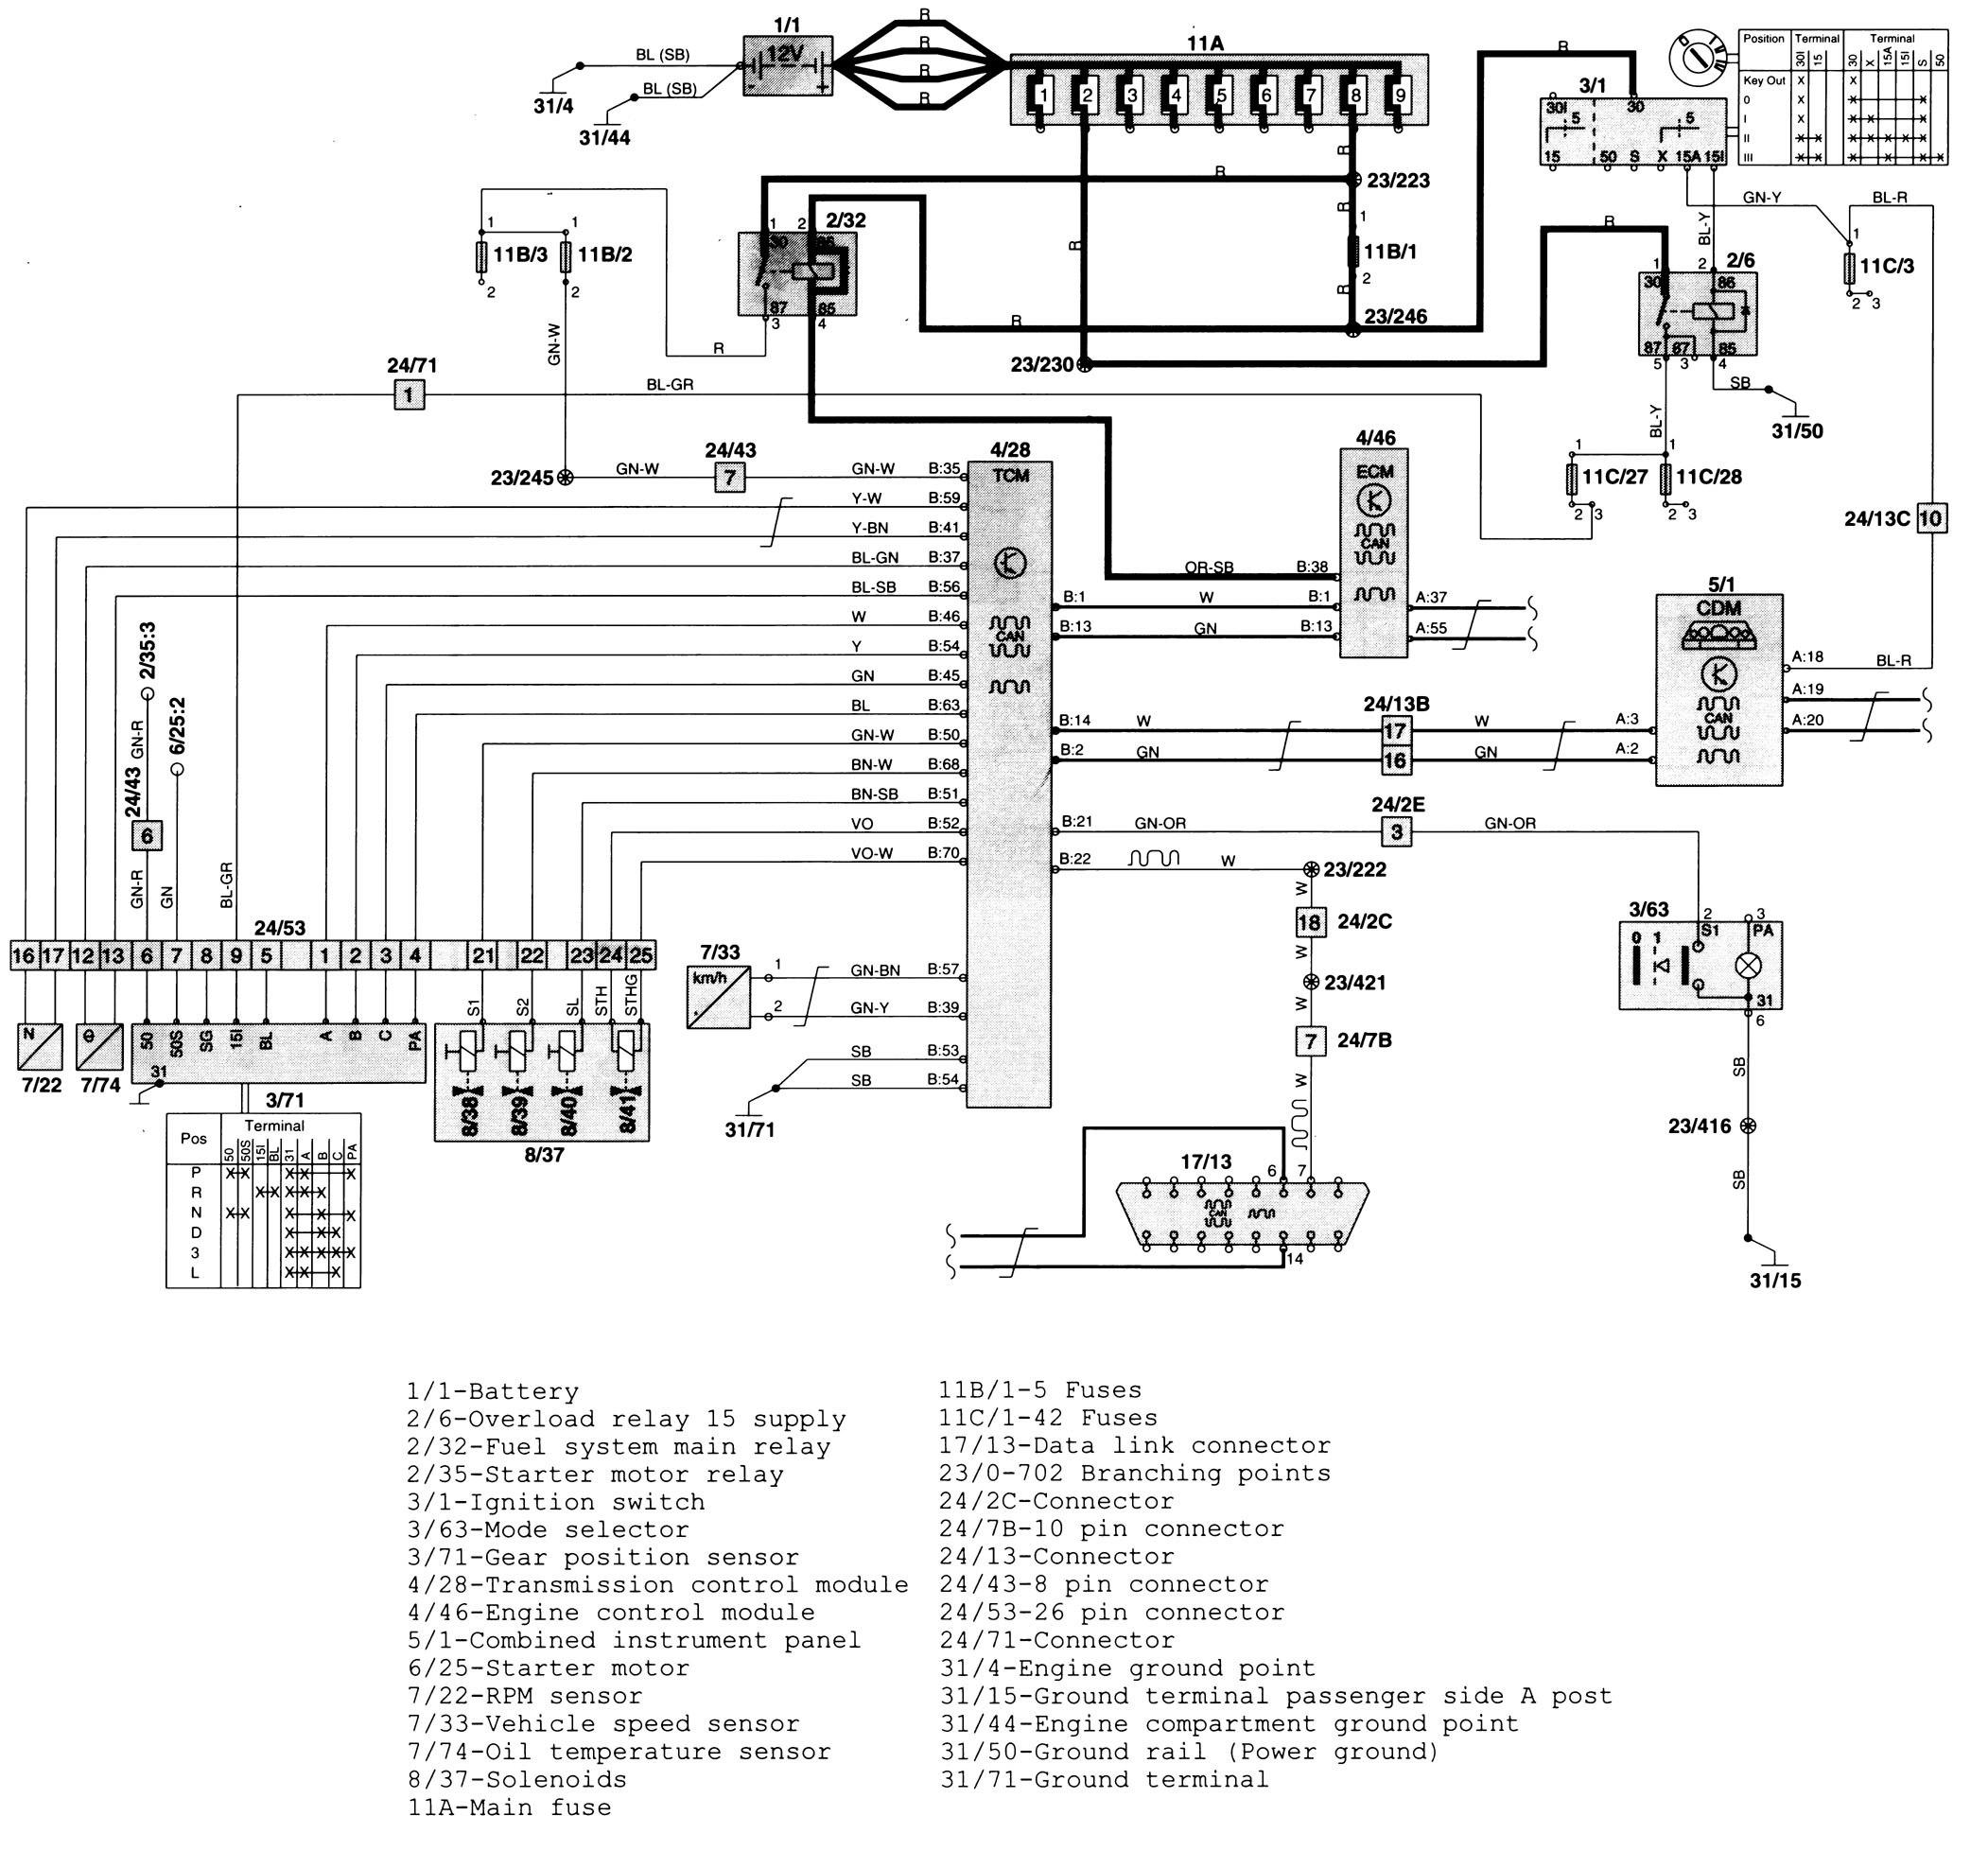 Wiring Diagram Volvo V70 2000 Wiring Diagram Official Official Saleebalocchi It